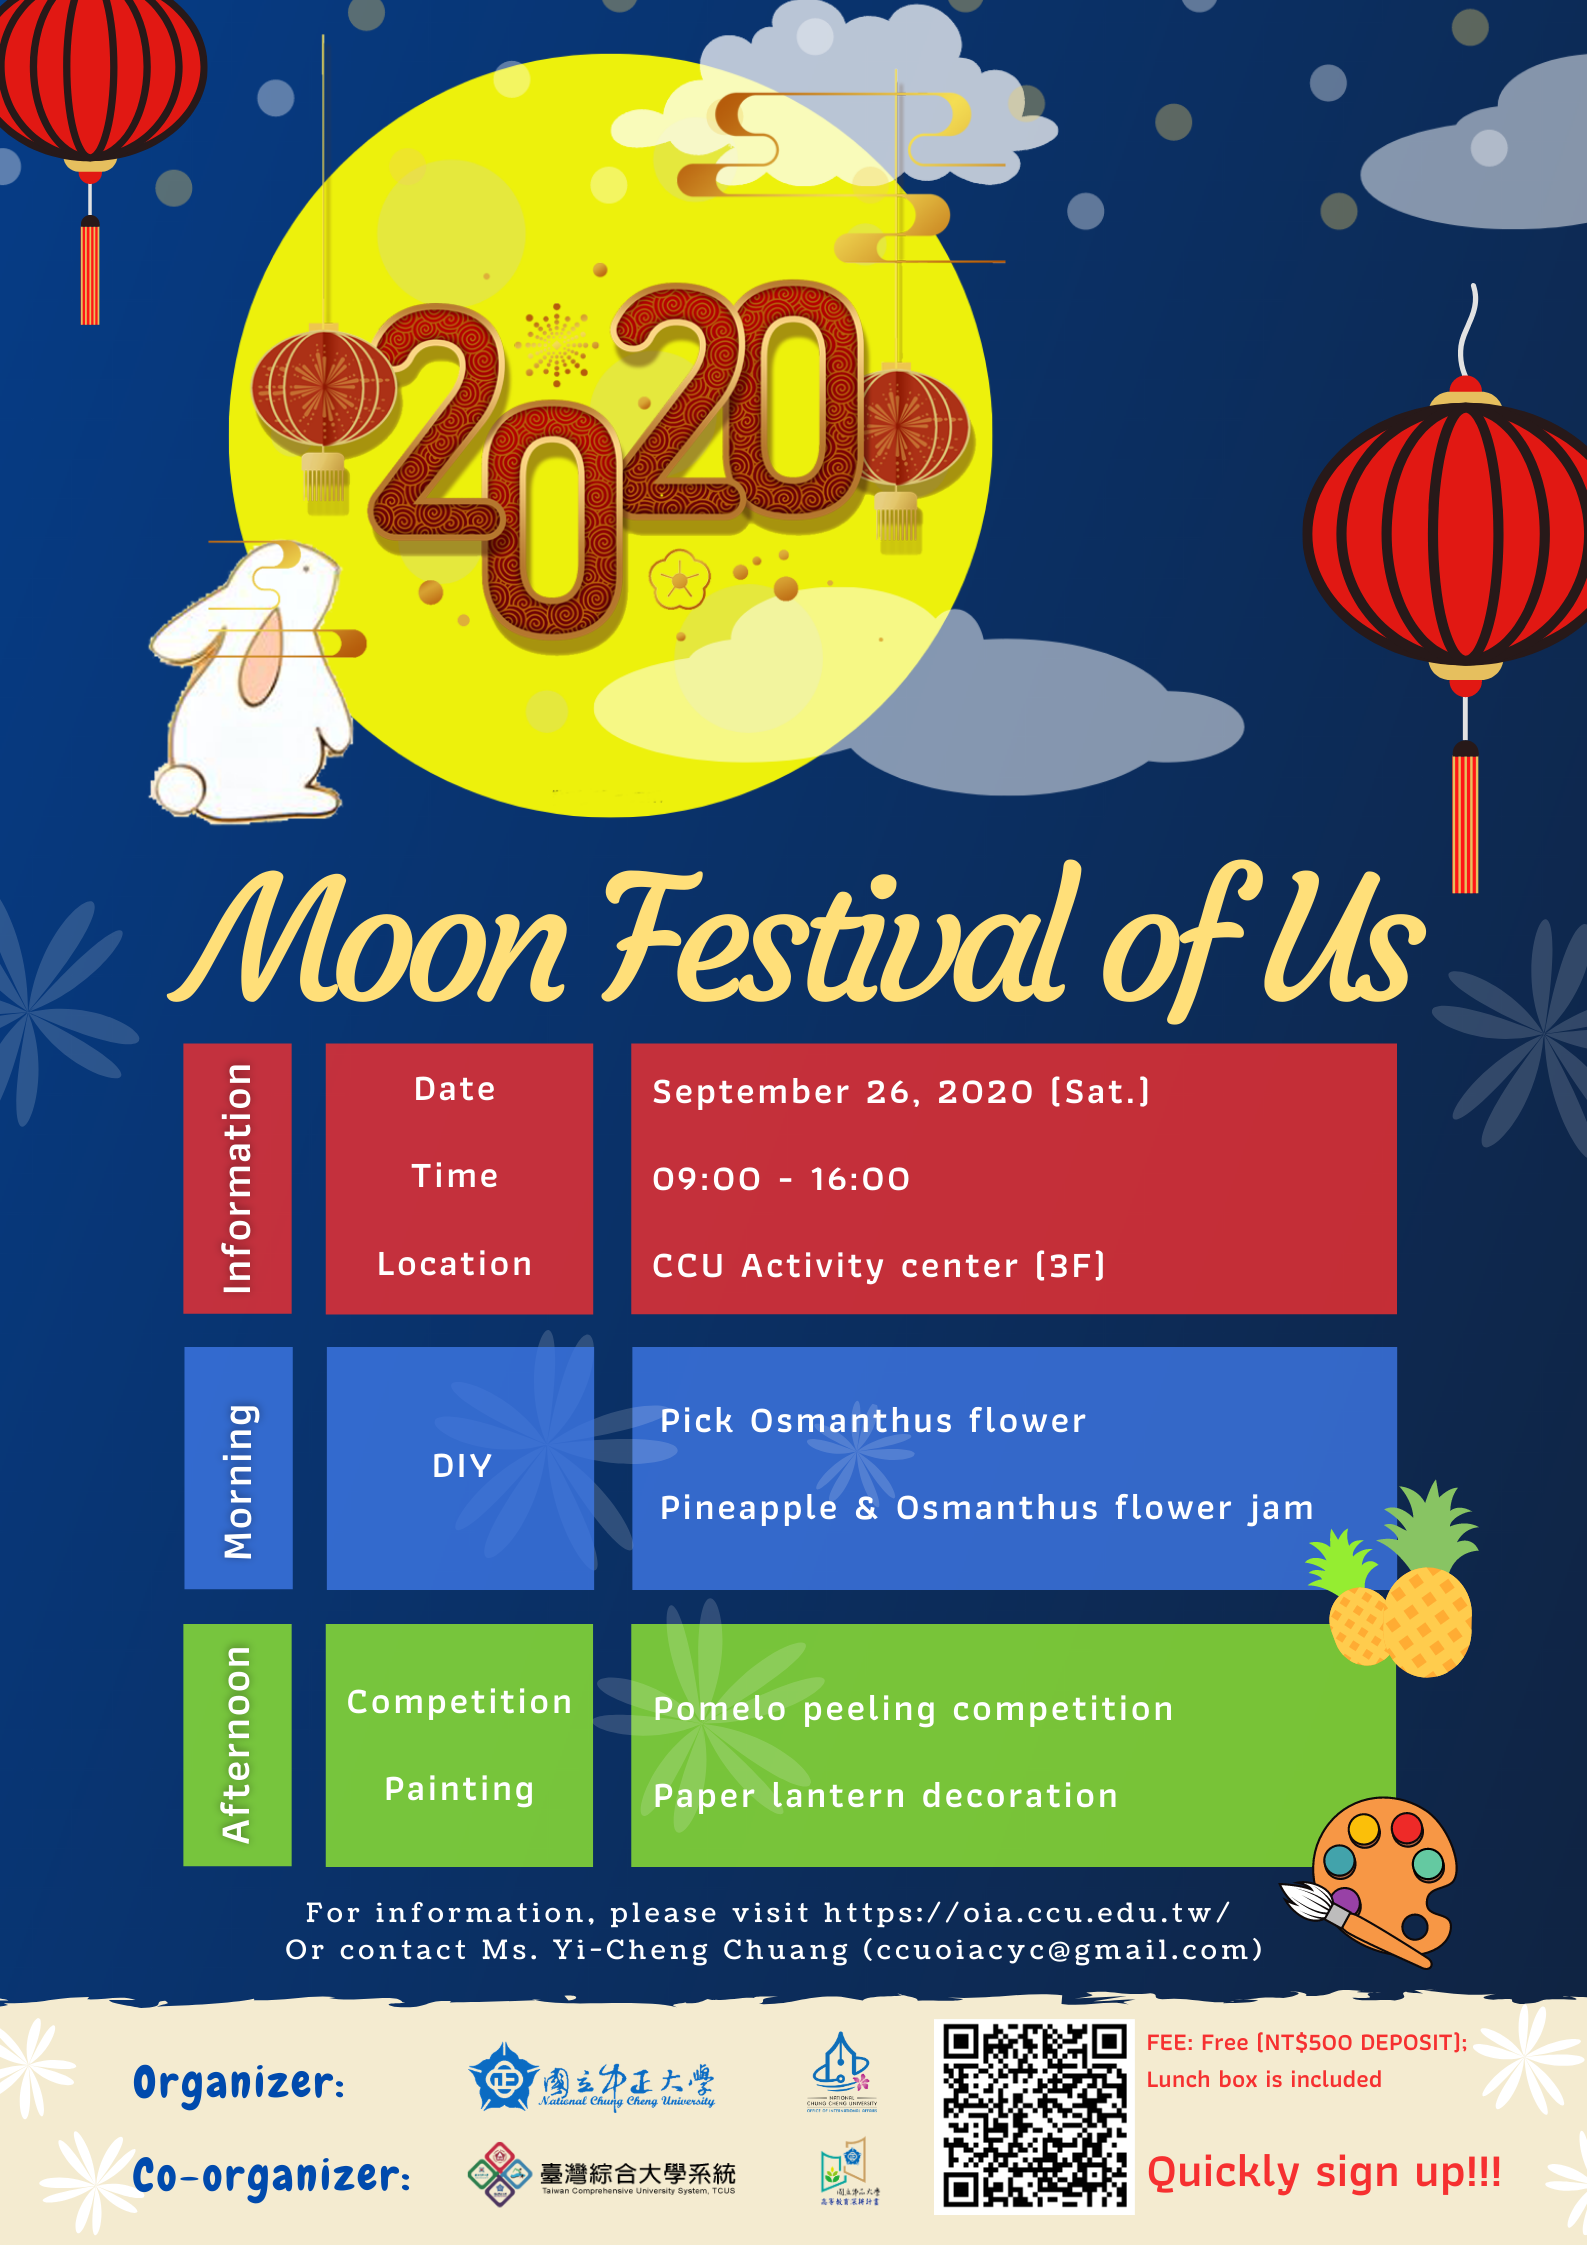 2020 Moon Festival of Us